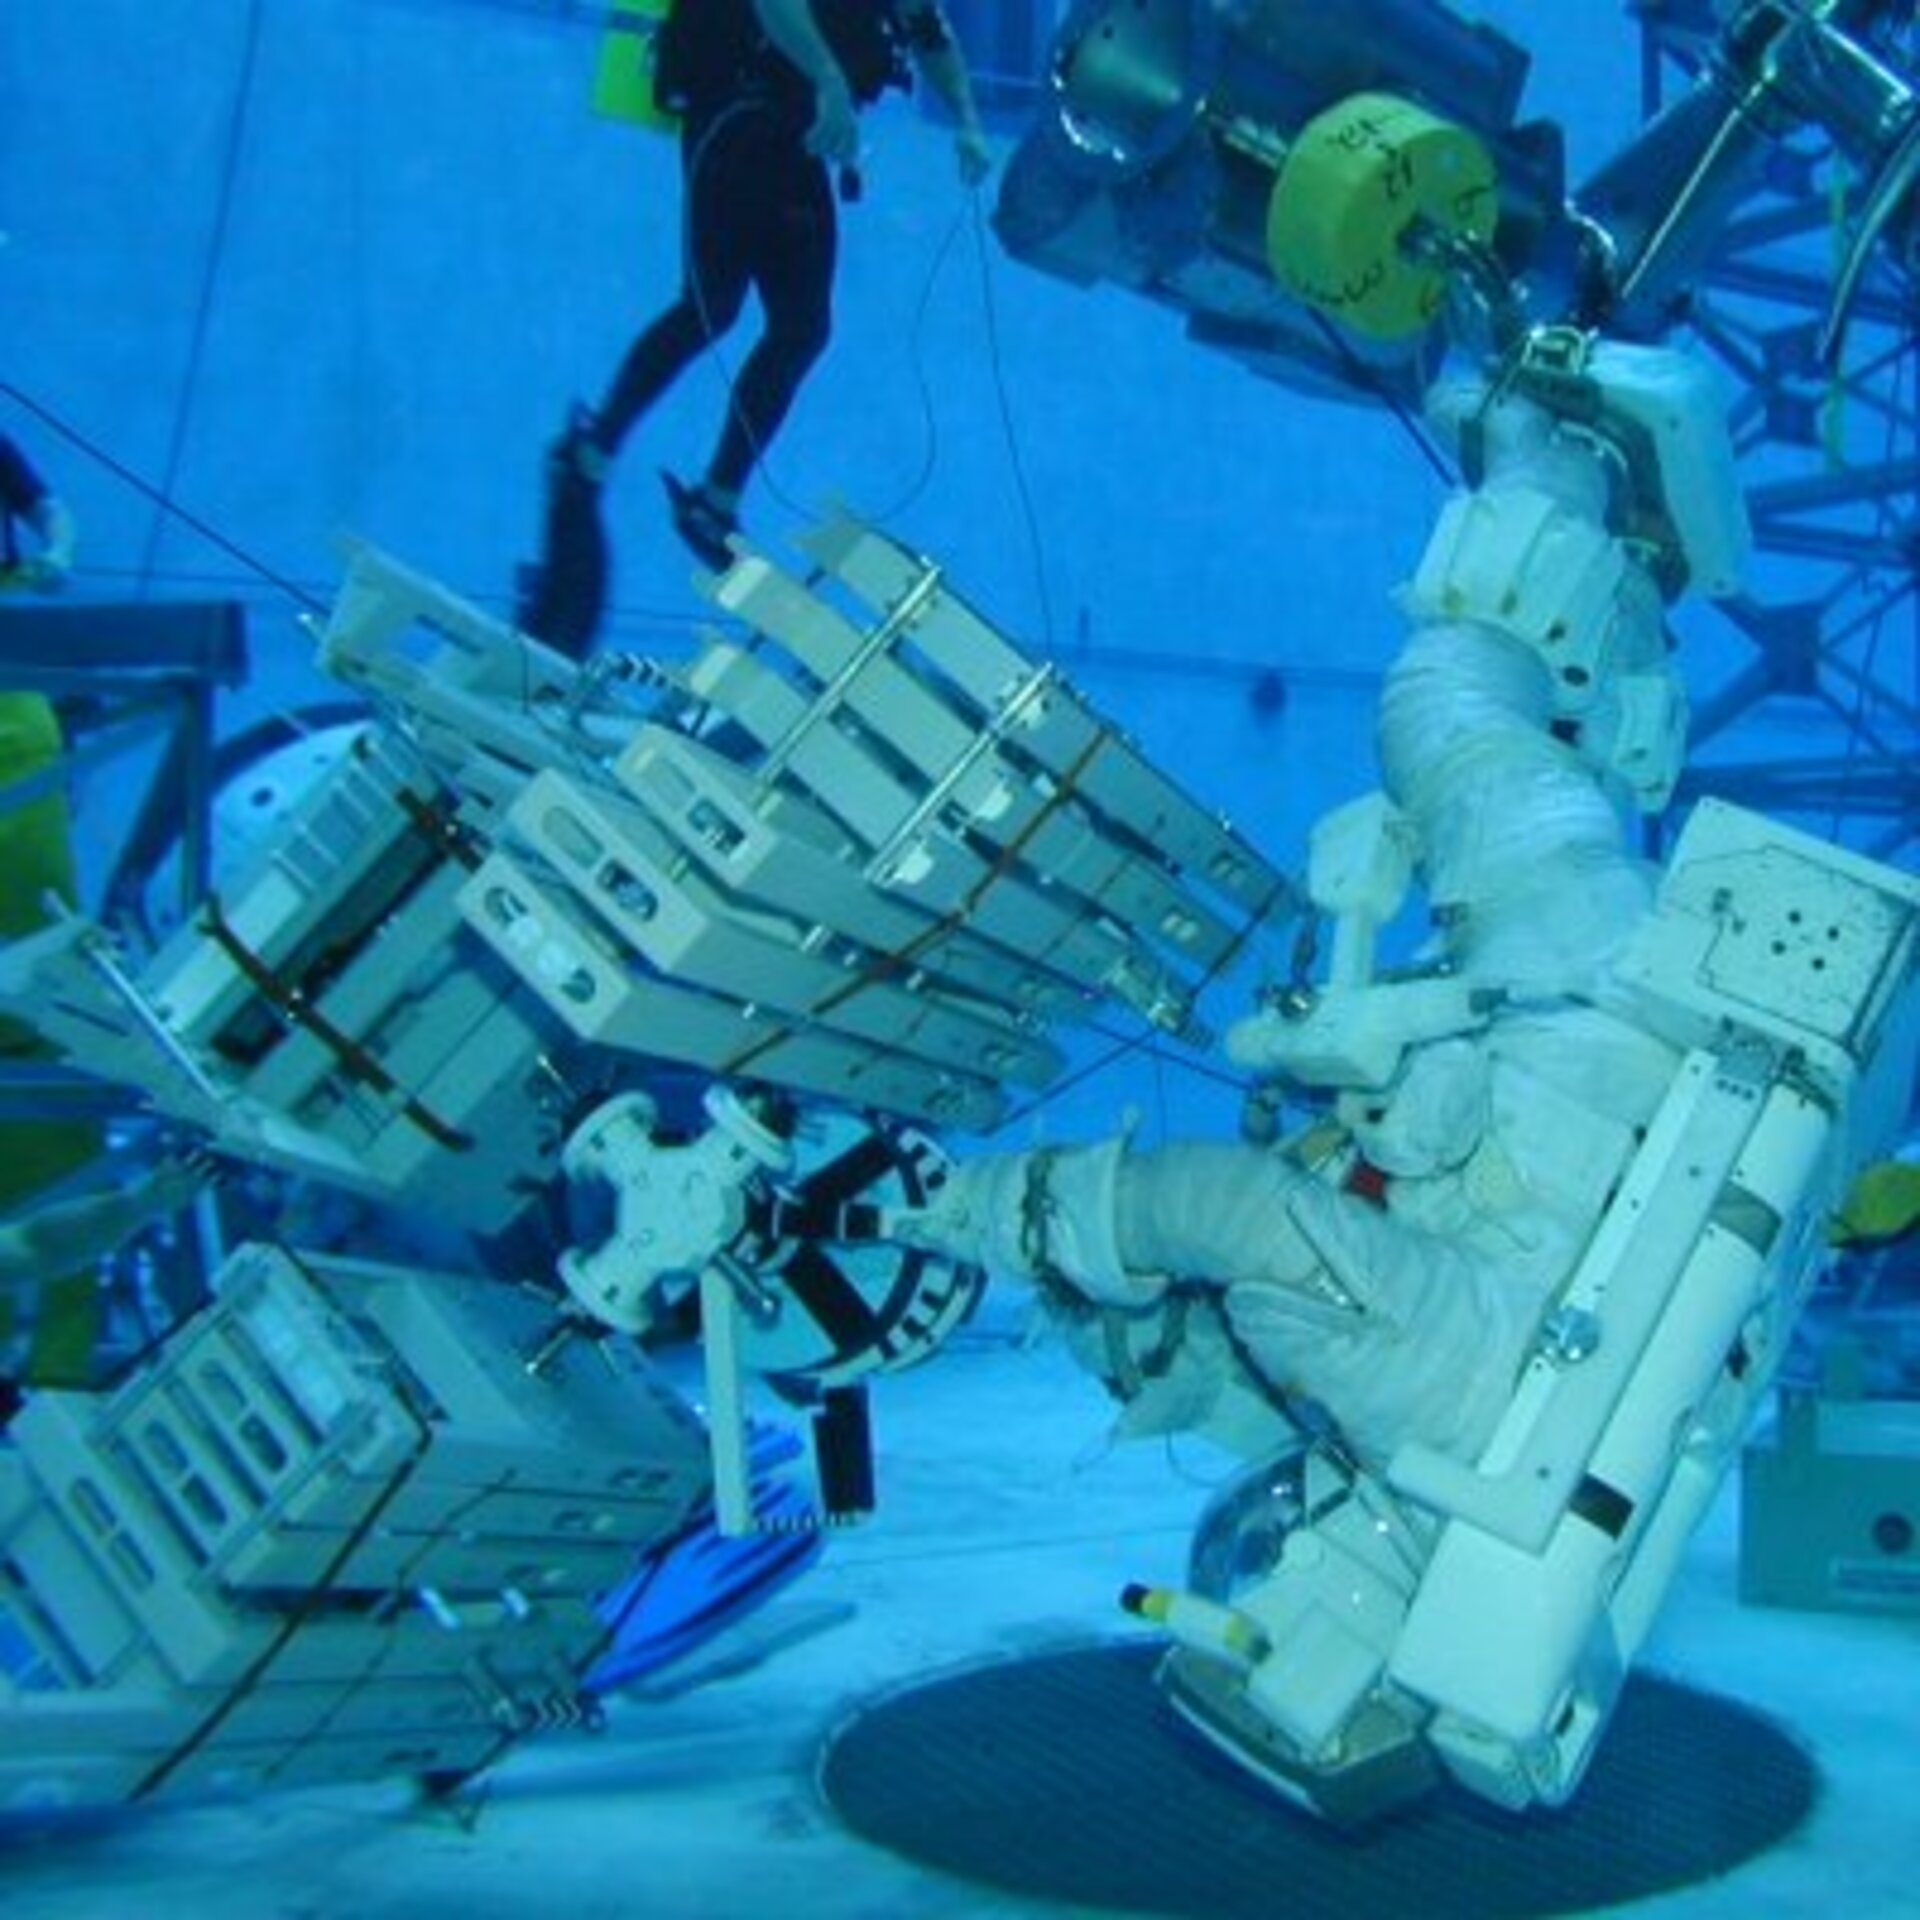 Fuglesang during EVA training in the Neutral Buoyancy Laboratory